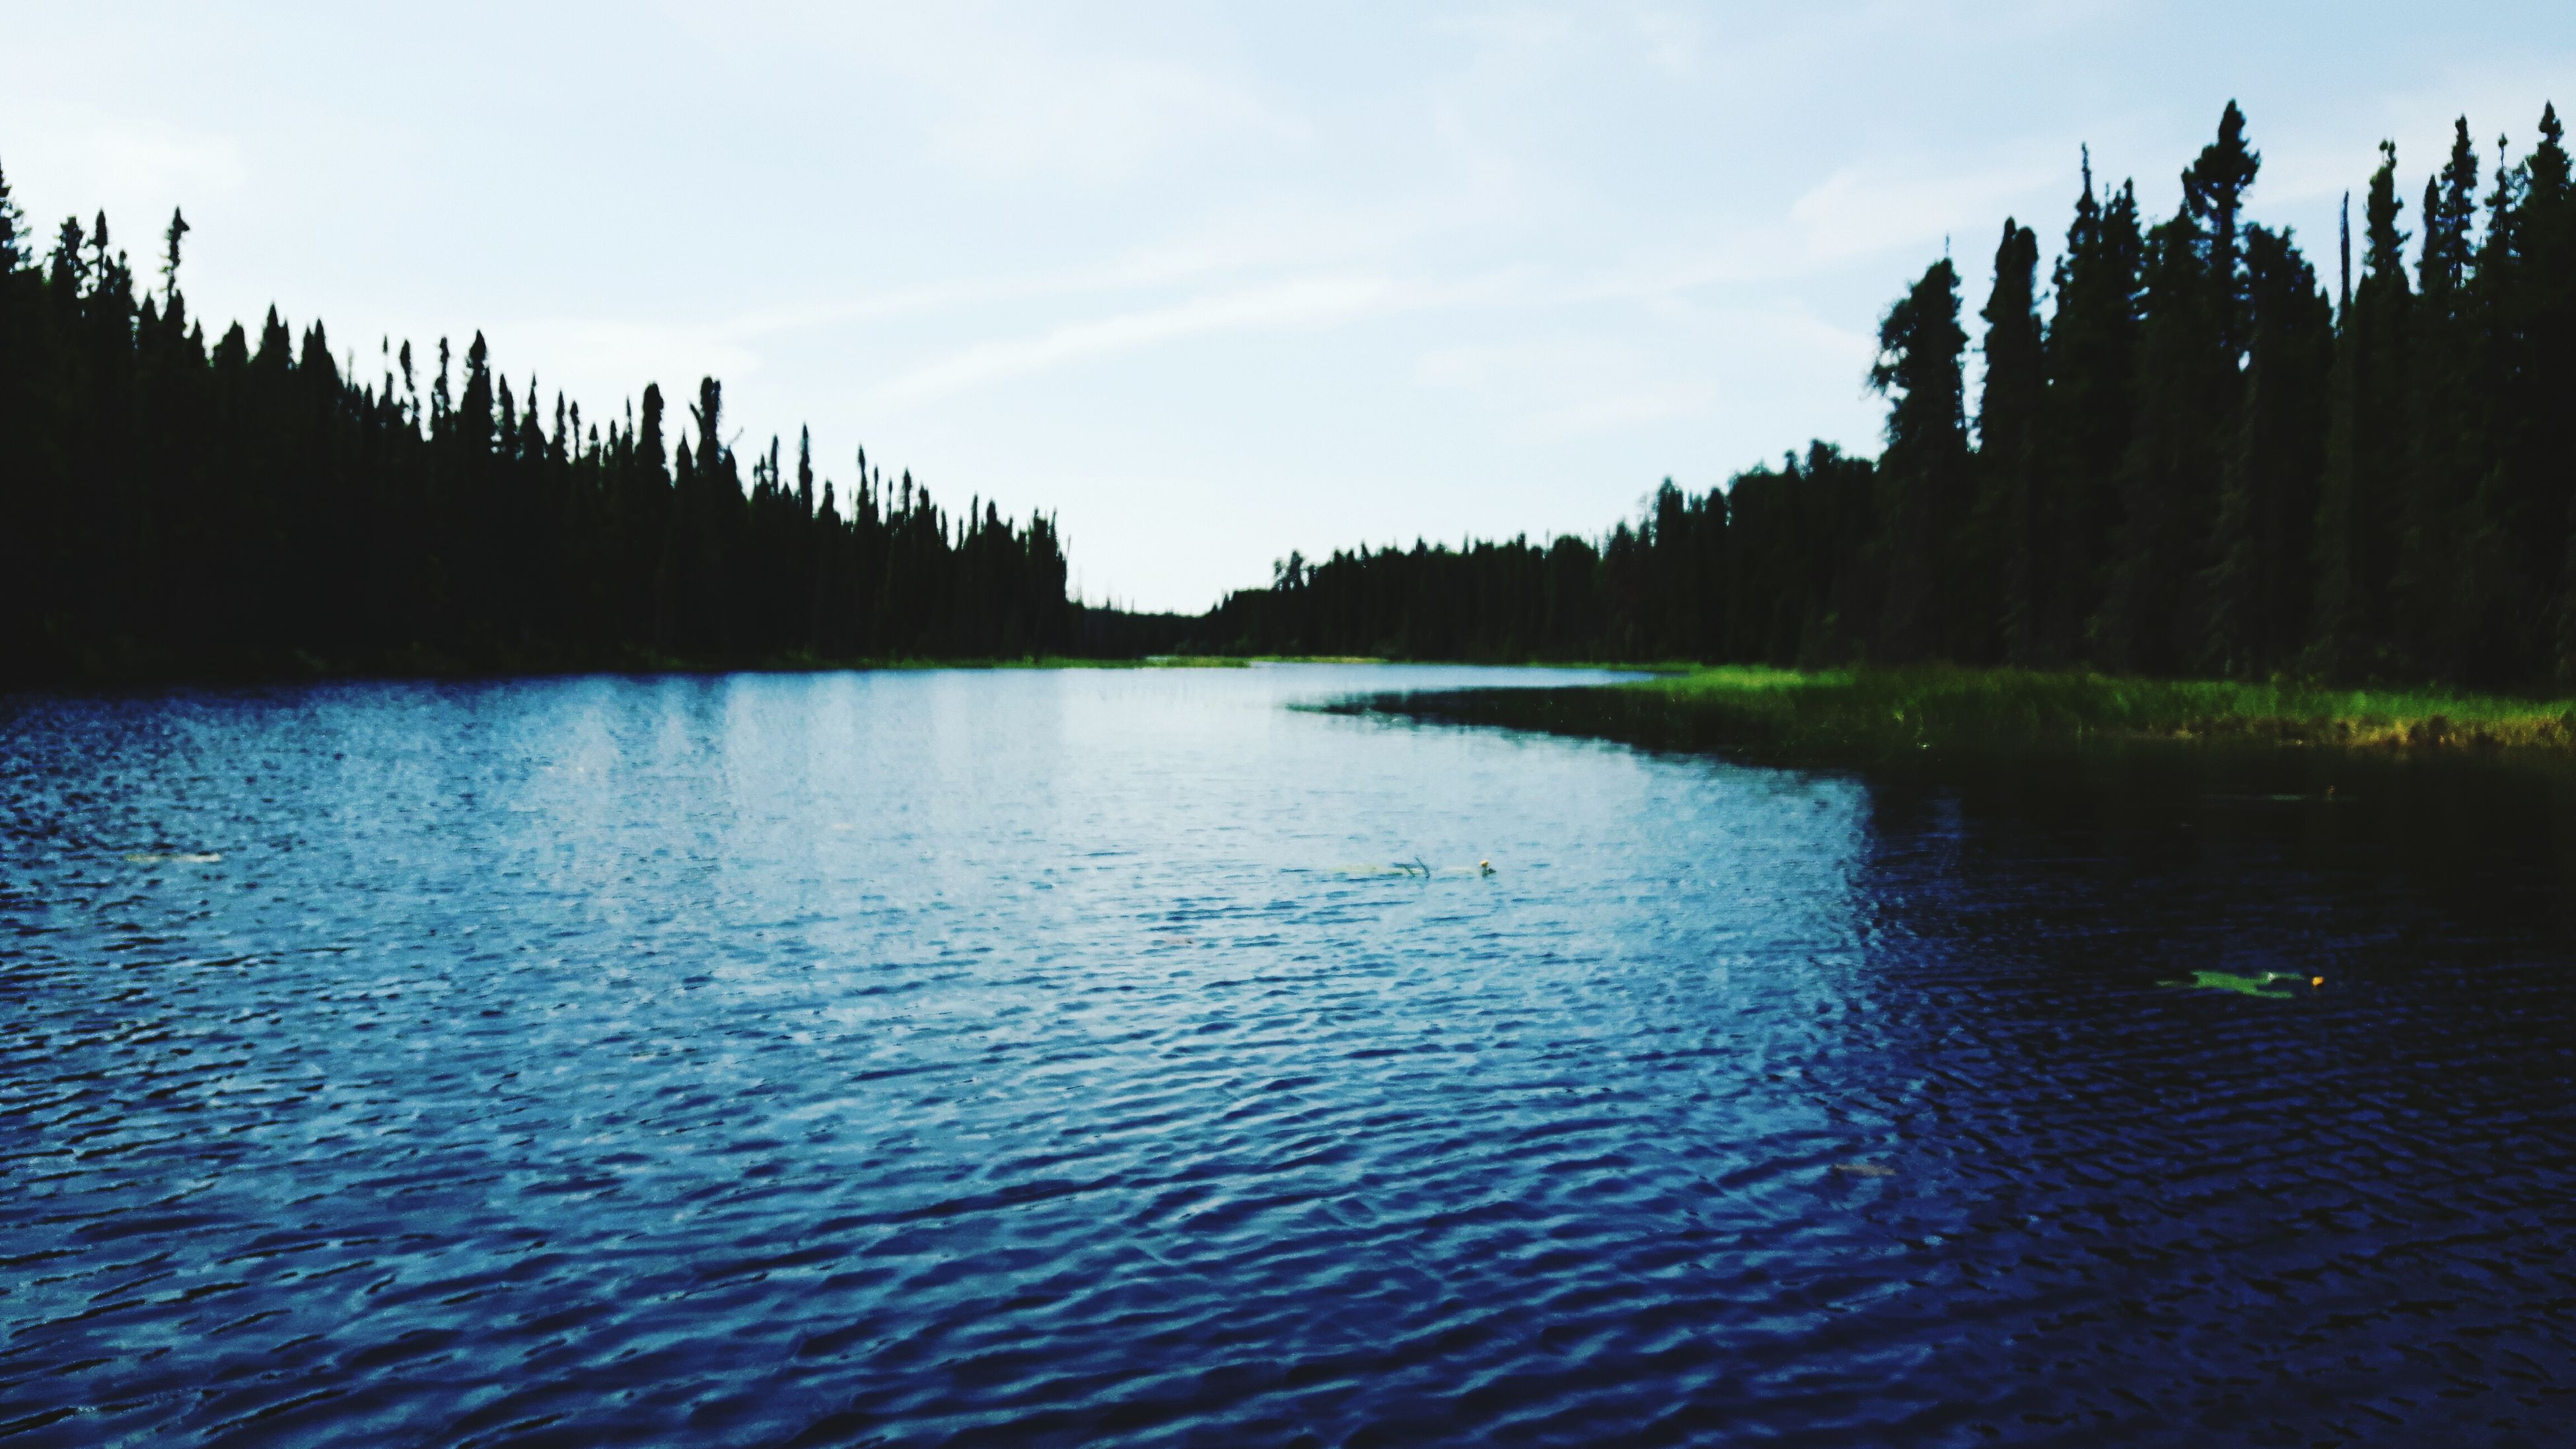 water, nature, tranquil scene, tranquility, beauty in nature, scenics, sky, no people, tree, rippled, lake, outdoors, day